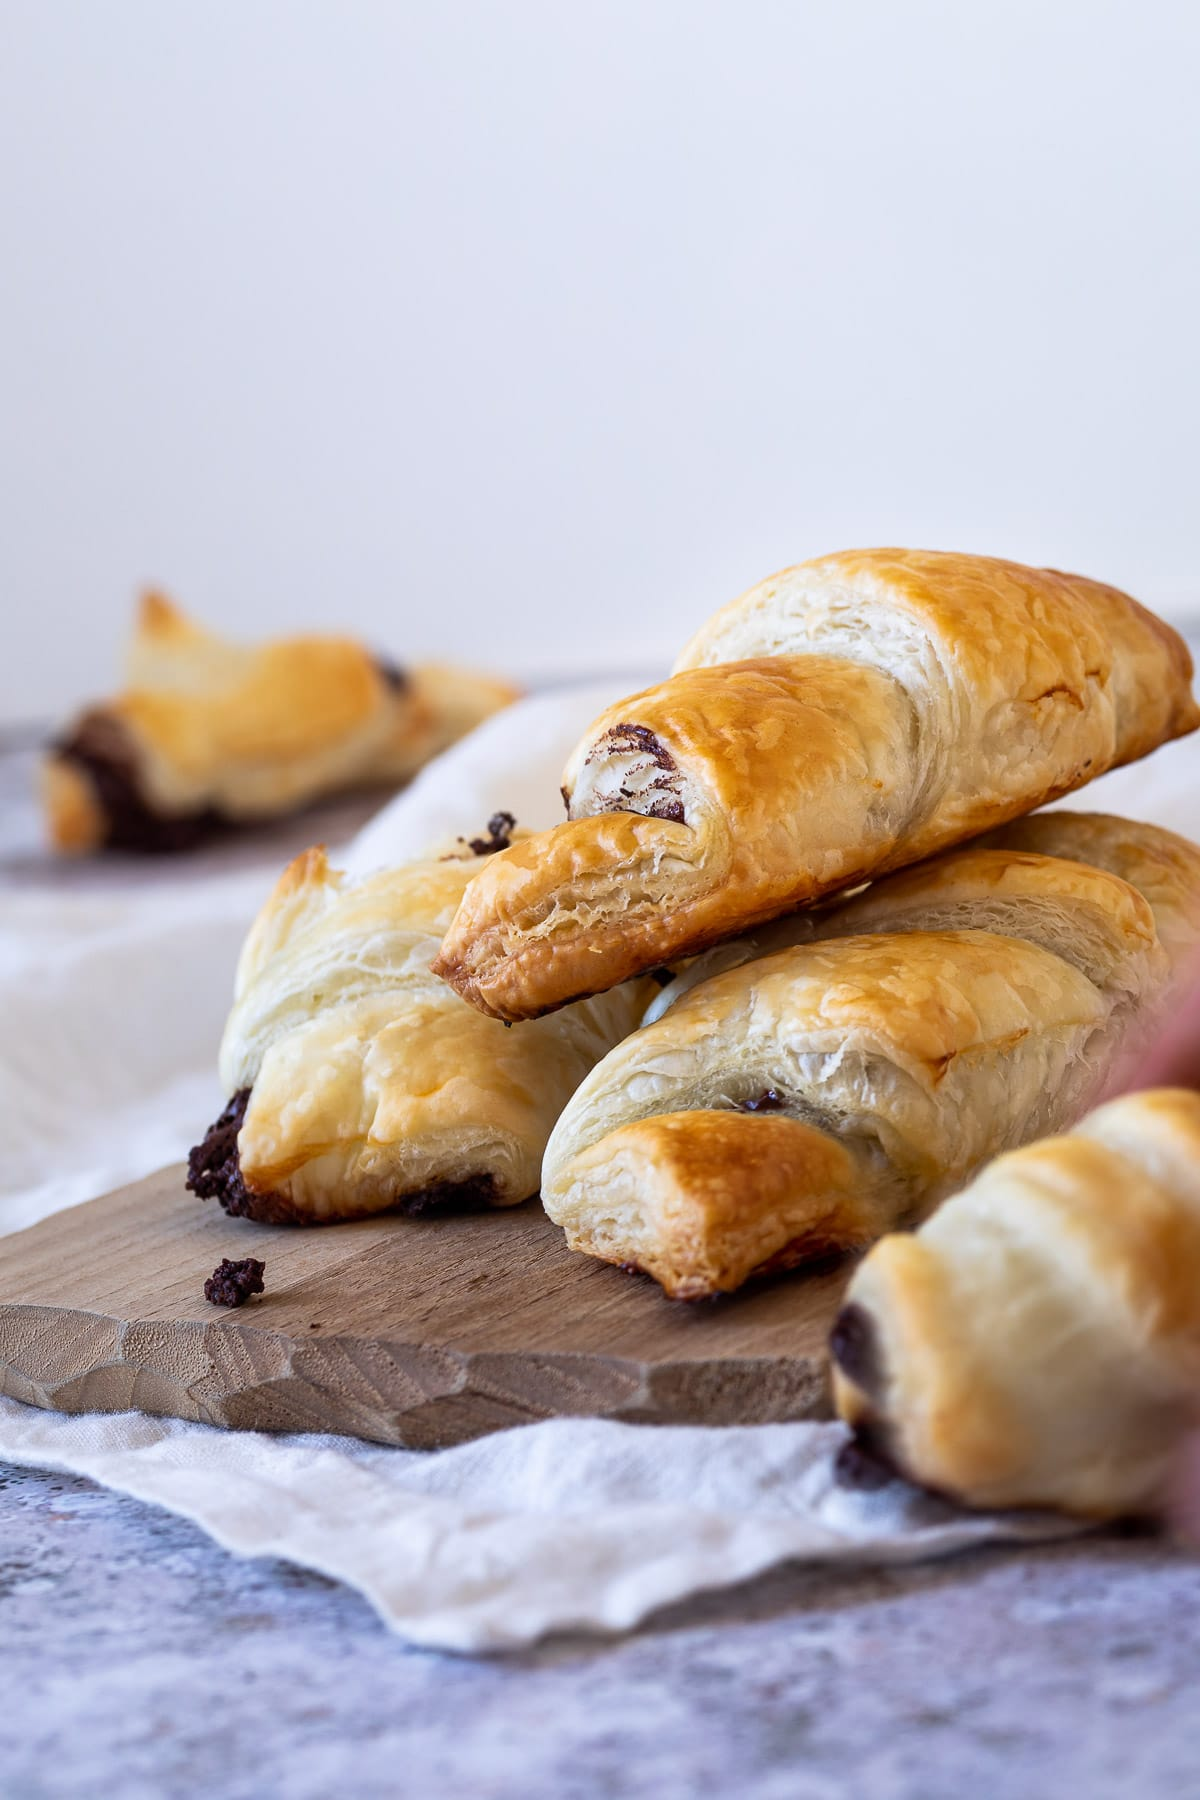 Flaky chocolate croissants on a wooden board with a croissant blurred in the backgroound